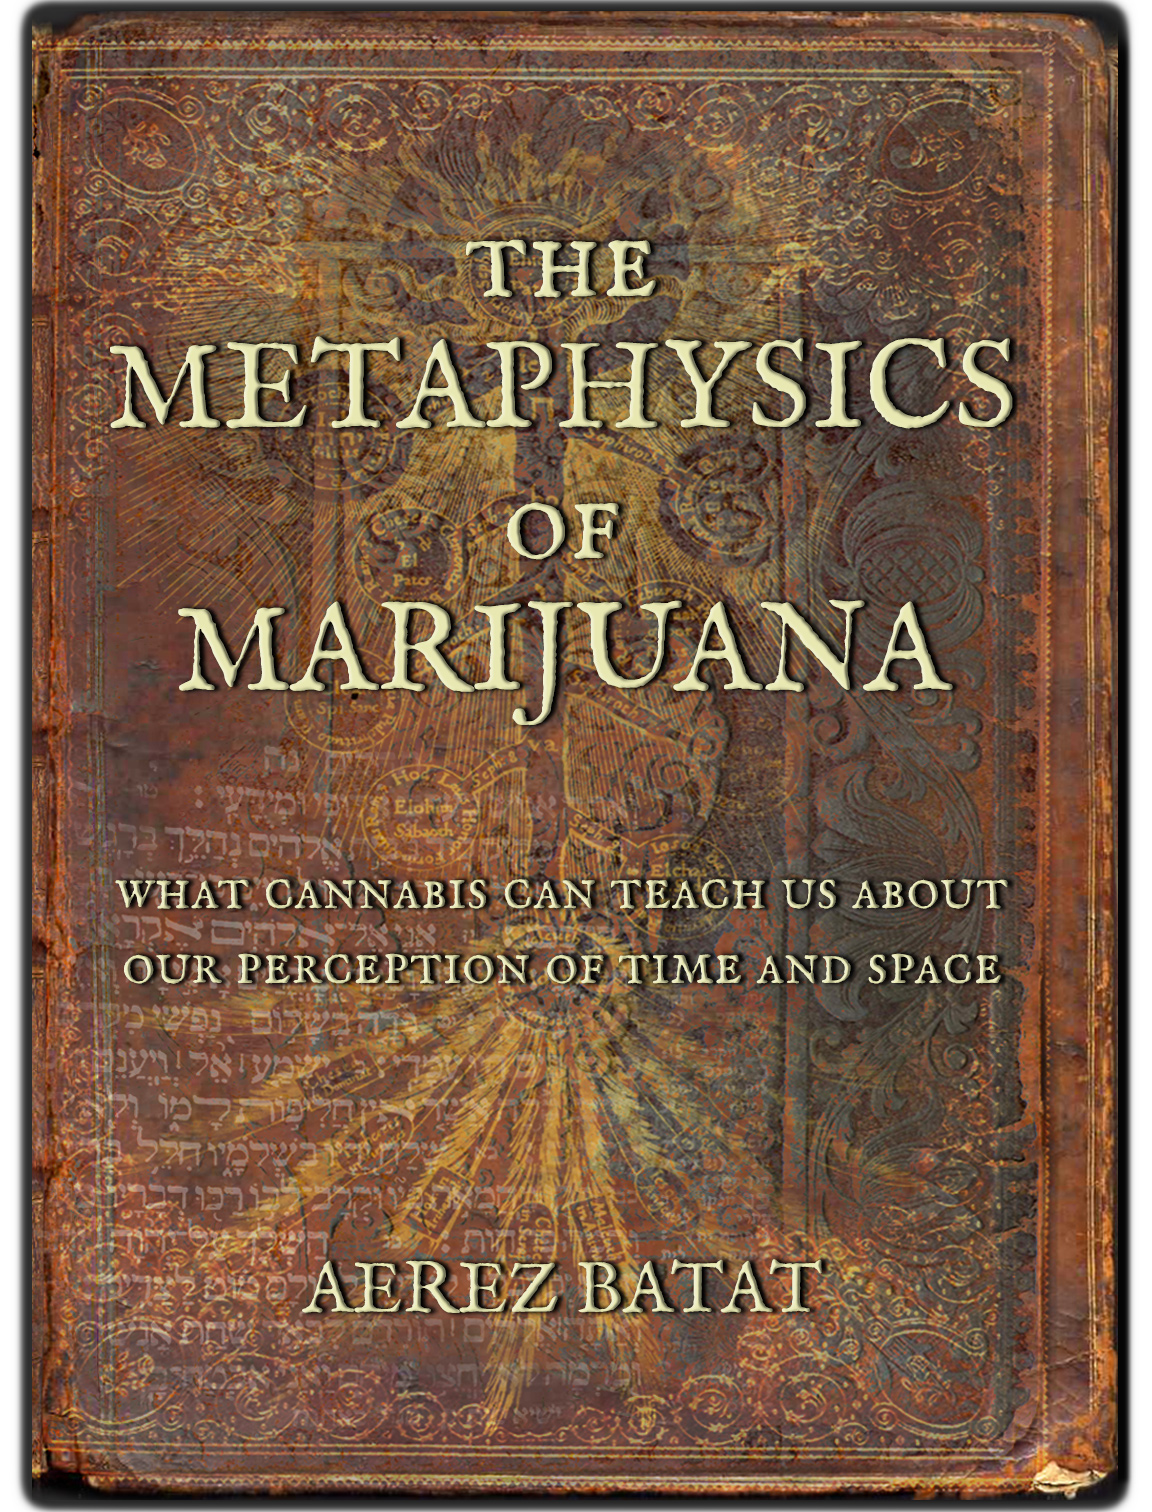 marijuana book cover.jpg